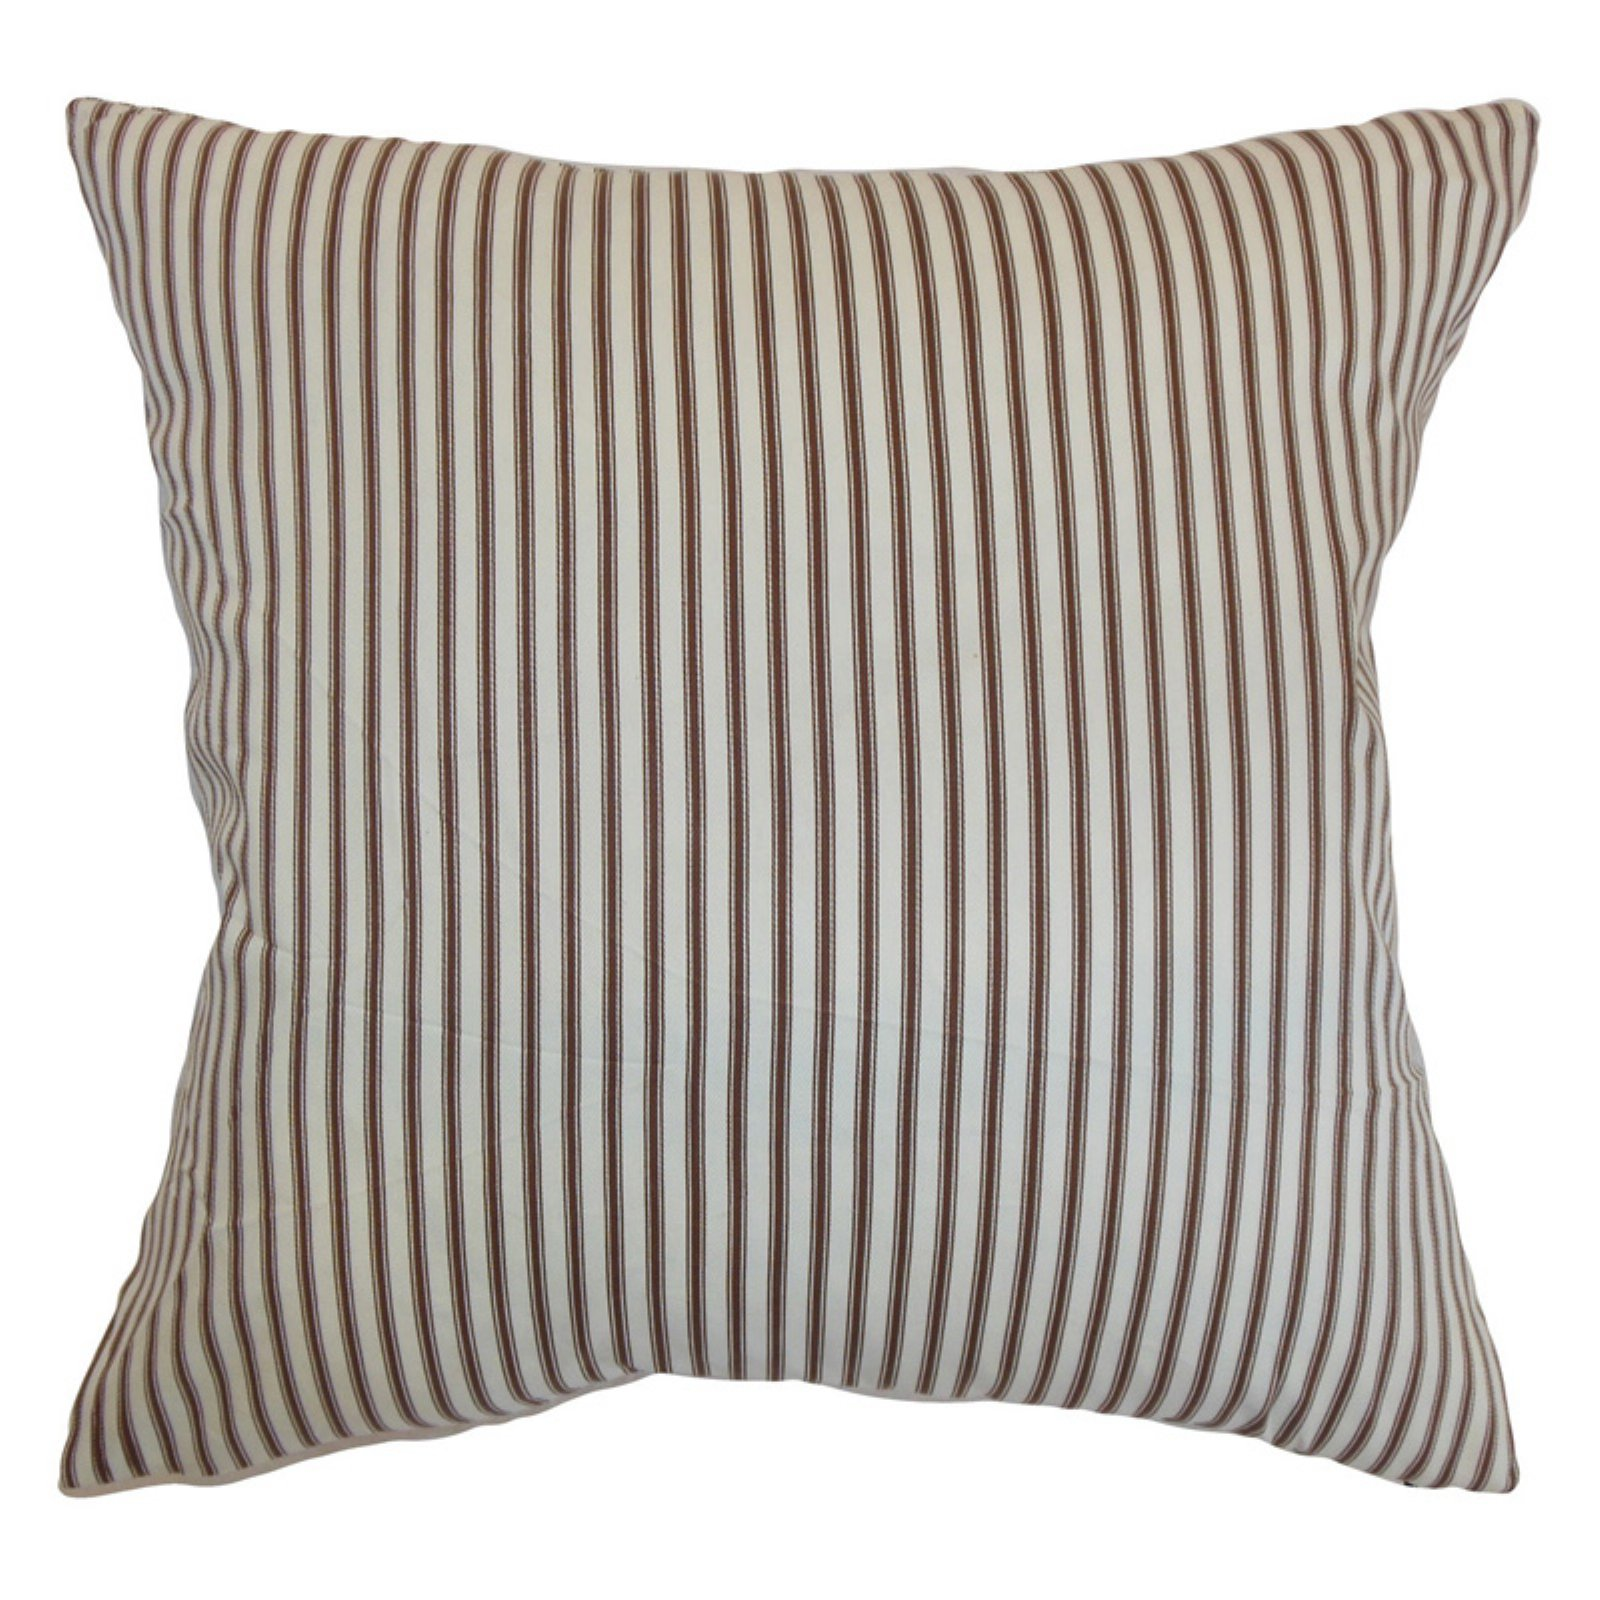 The Pillow Collection Daxiam Stripes Pillow - Brown White